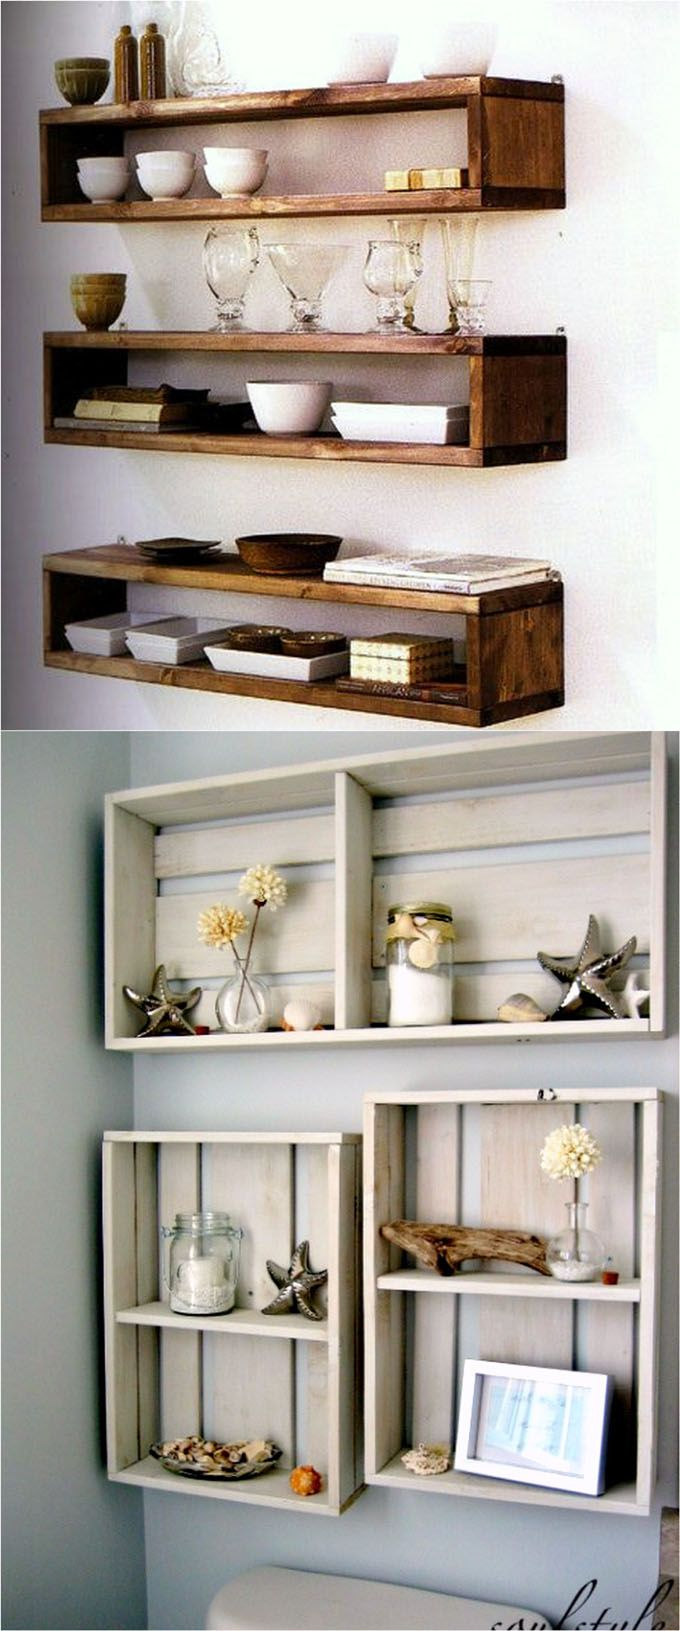 Best 25+ Pallet shelves ideas on Pinterest | Pallet shelves diy ...